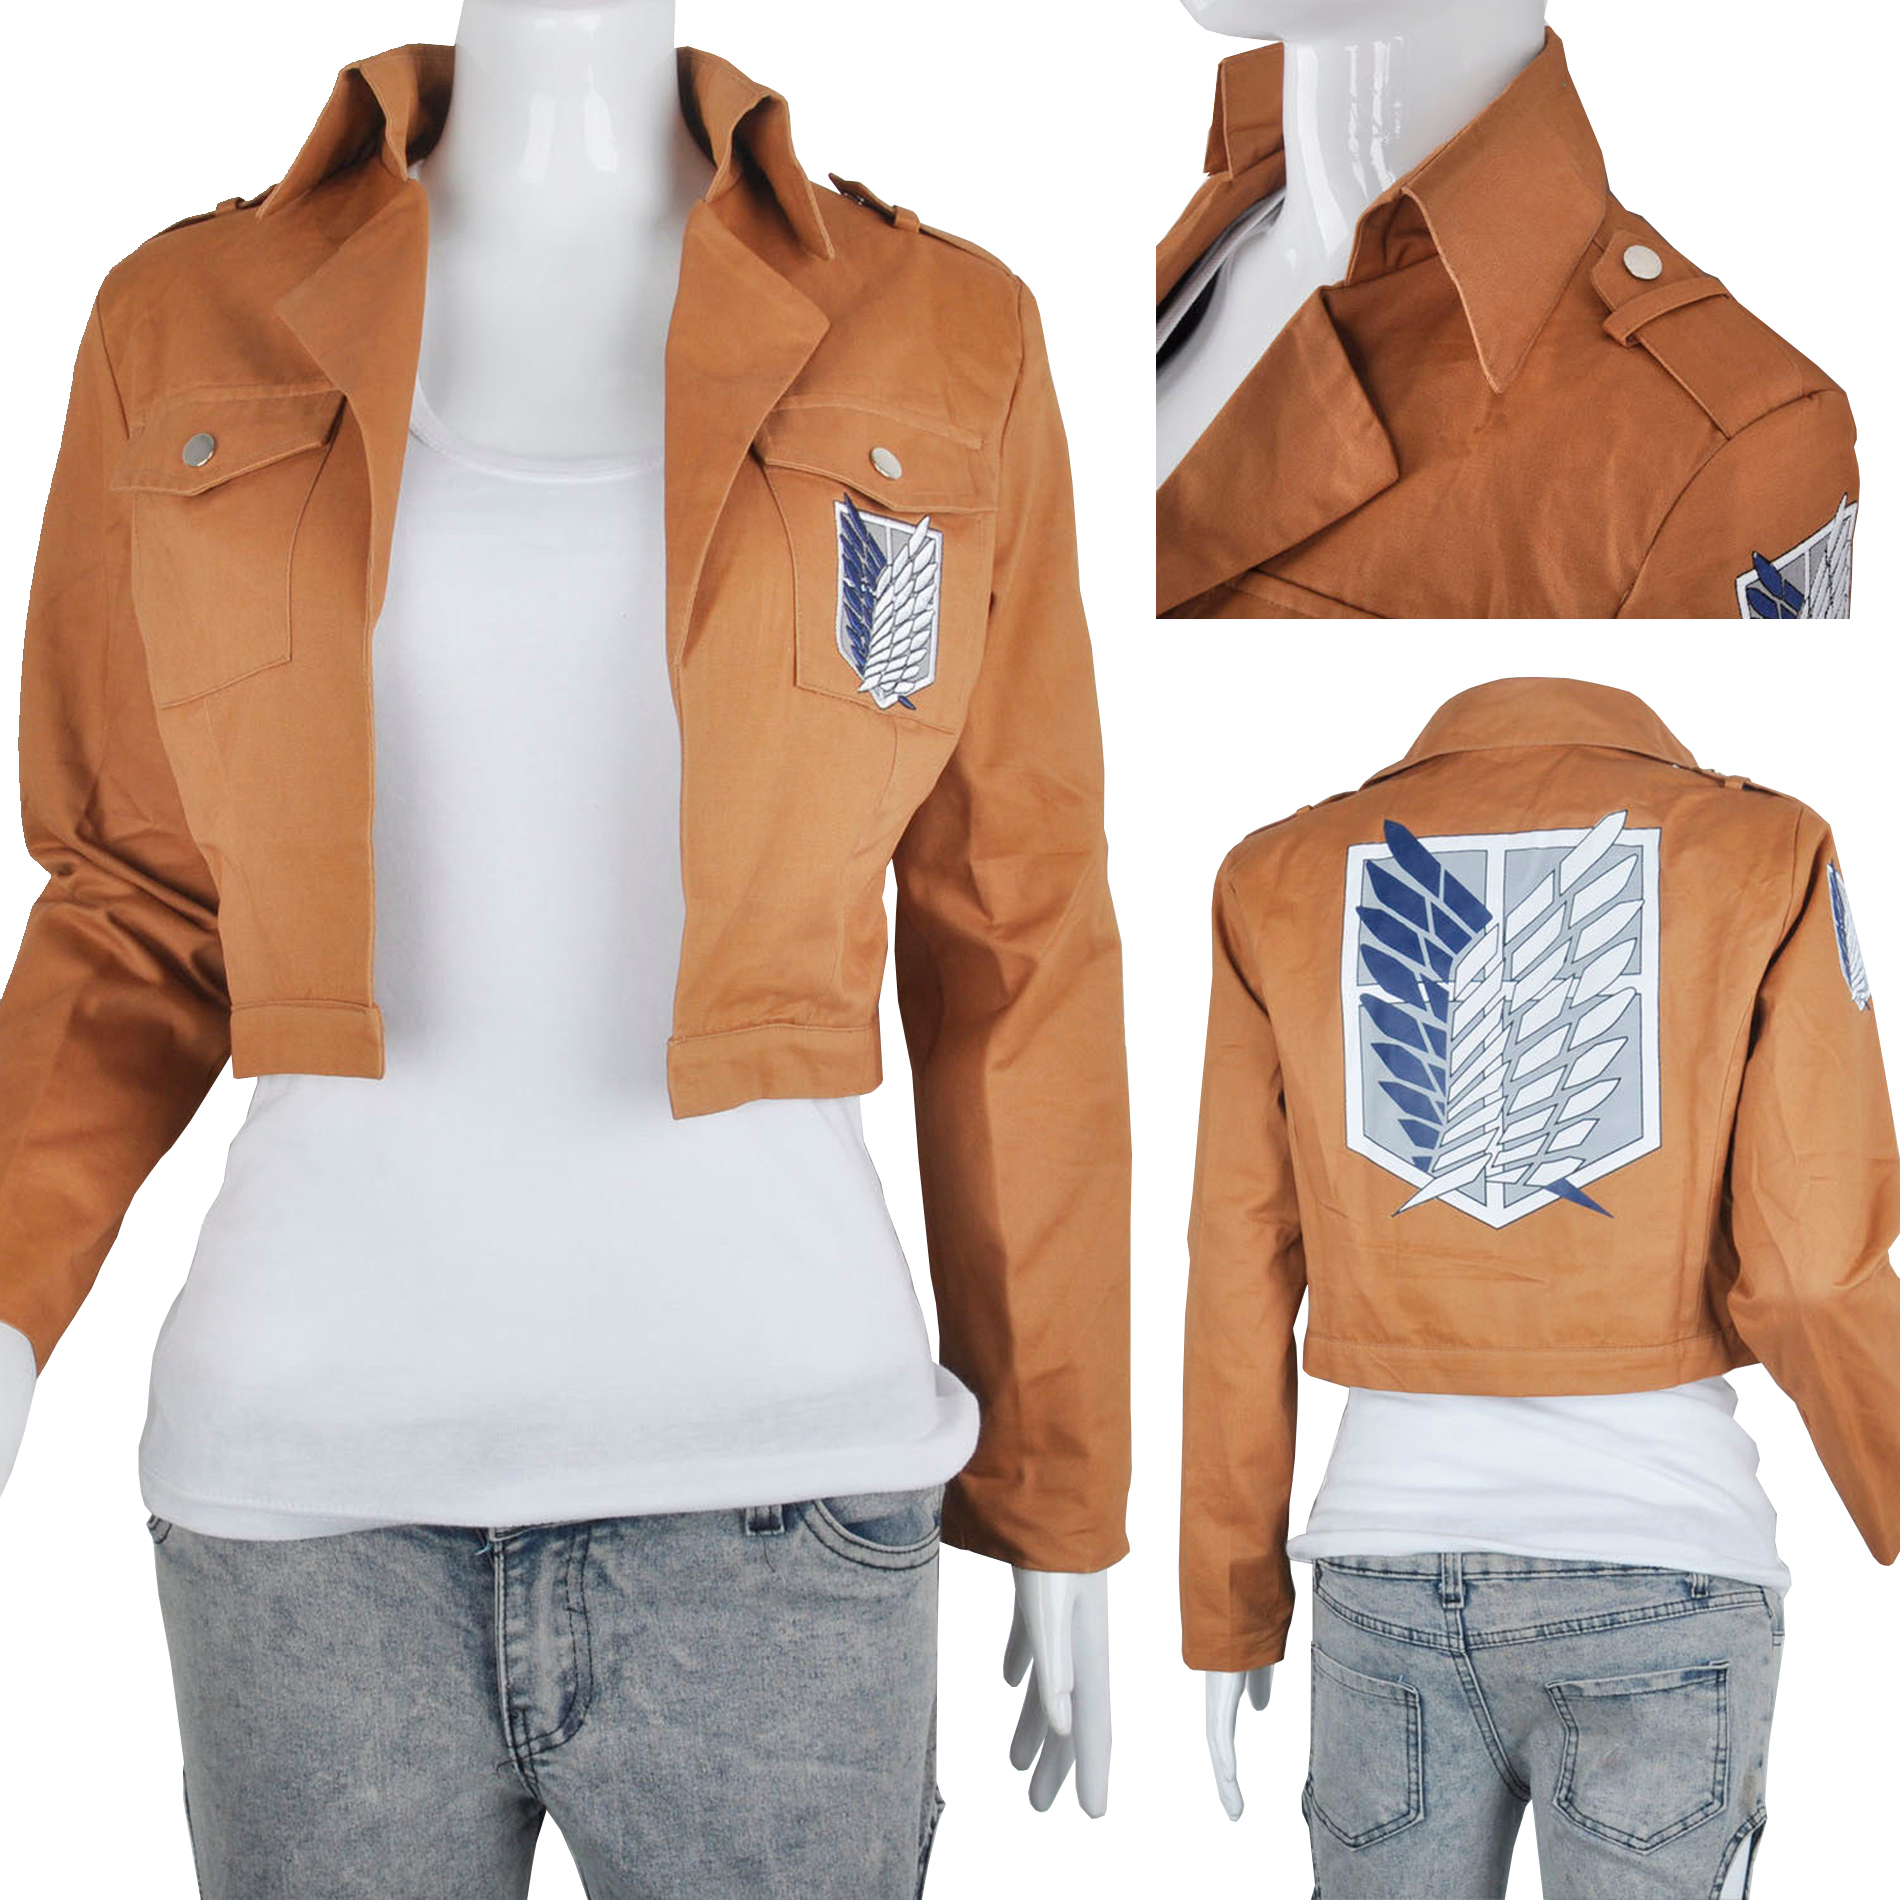 Khaki Anime Attack on Titan Jacket Coat Cosplay Costumes Clothes